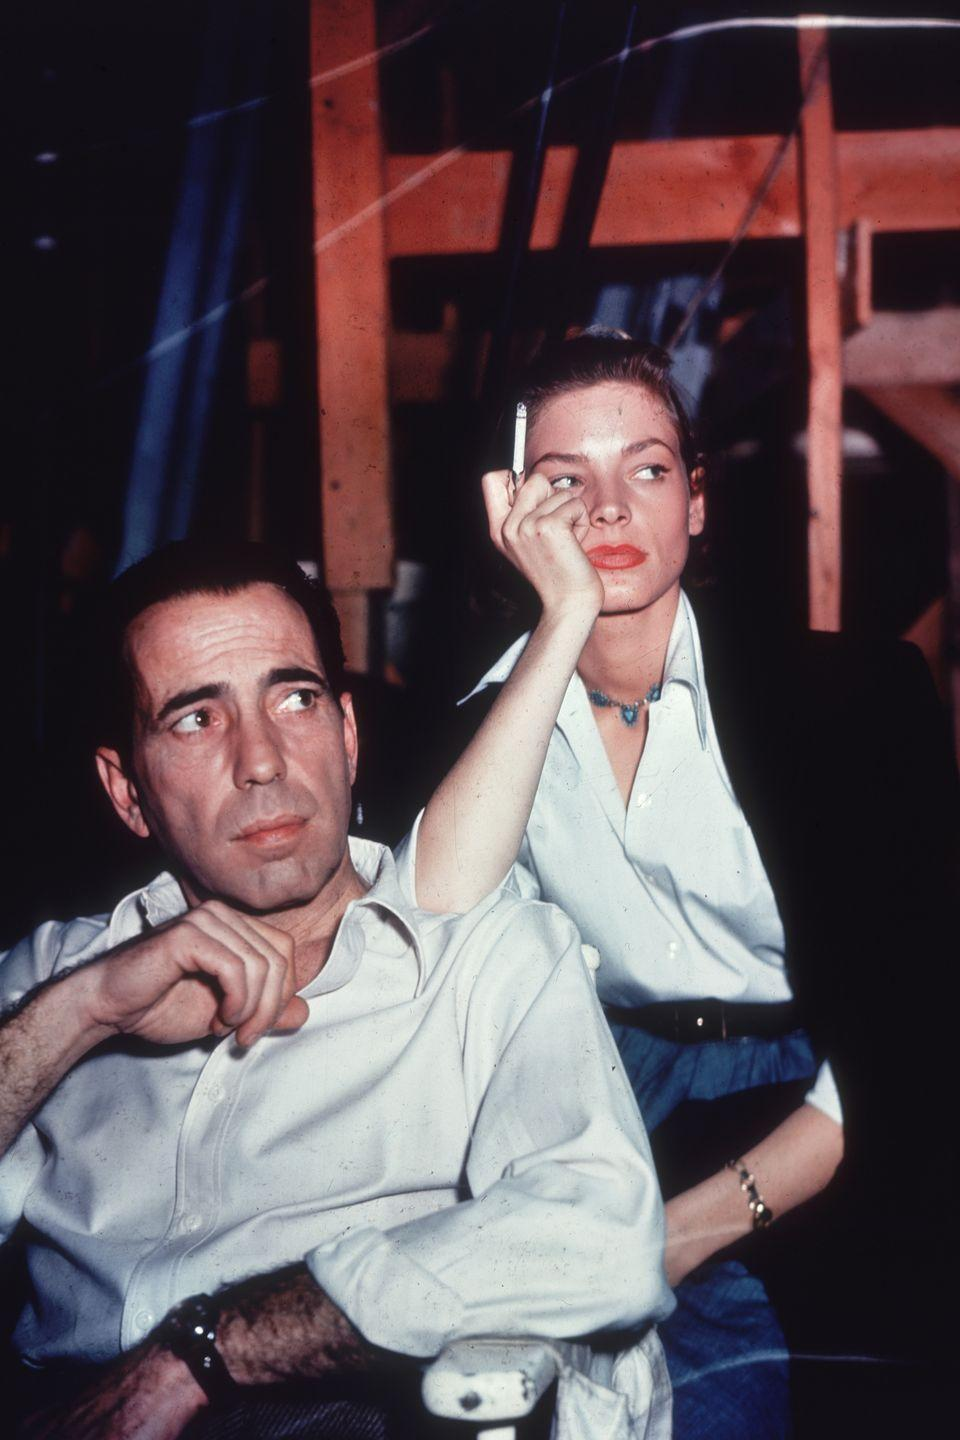 """<p>Lauren Bacall leans on the shoulder of her husband and costar, Humphrey Bogart, while waiting on the set of their film <em>Key Largo</em>. After <a href=""""https://www.harpersbazaar.com/celebrity/g31038655/lauren-bacall-life-in-photos/?slide=9"""" rel=""""nofollow noopener"""" target=""""_blank"""" data-ylk=""""slk:meeting on the set"""" class=""""link rapid-noclick-resp"""">meeting on the set</a> of <em>To Have and Have Not</em><em>, </em>this was the couple's third collaboration. </p>"""